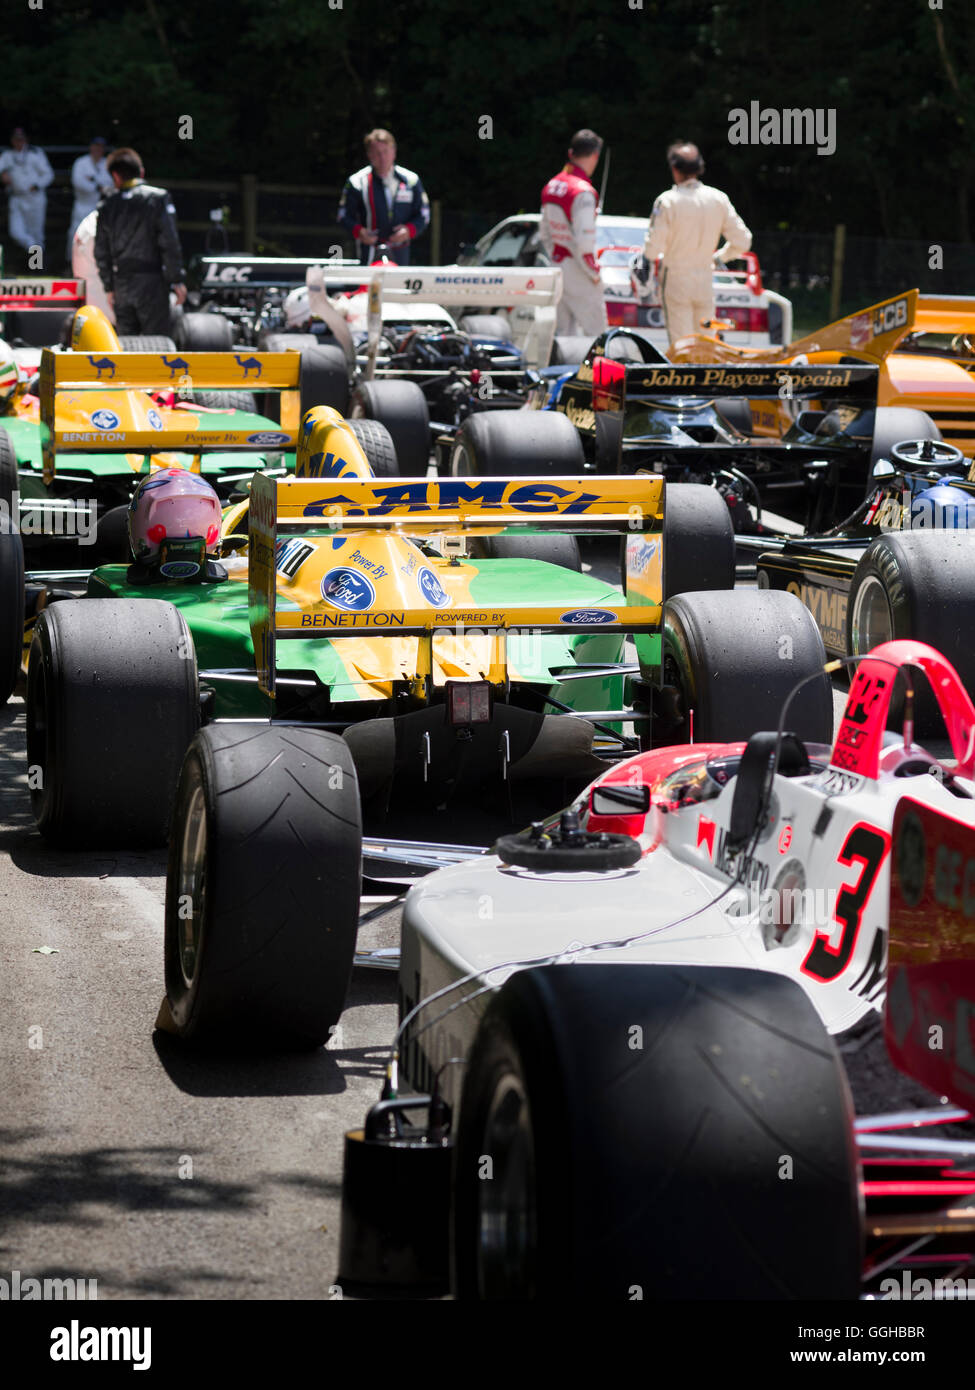 classic formula 1 racing cars photos classic formula 1 racing cars images alamy. Black Bedroom Furniture Sets. Home Design Ideas